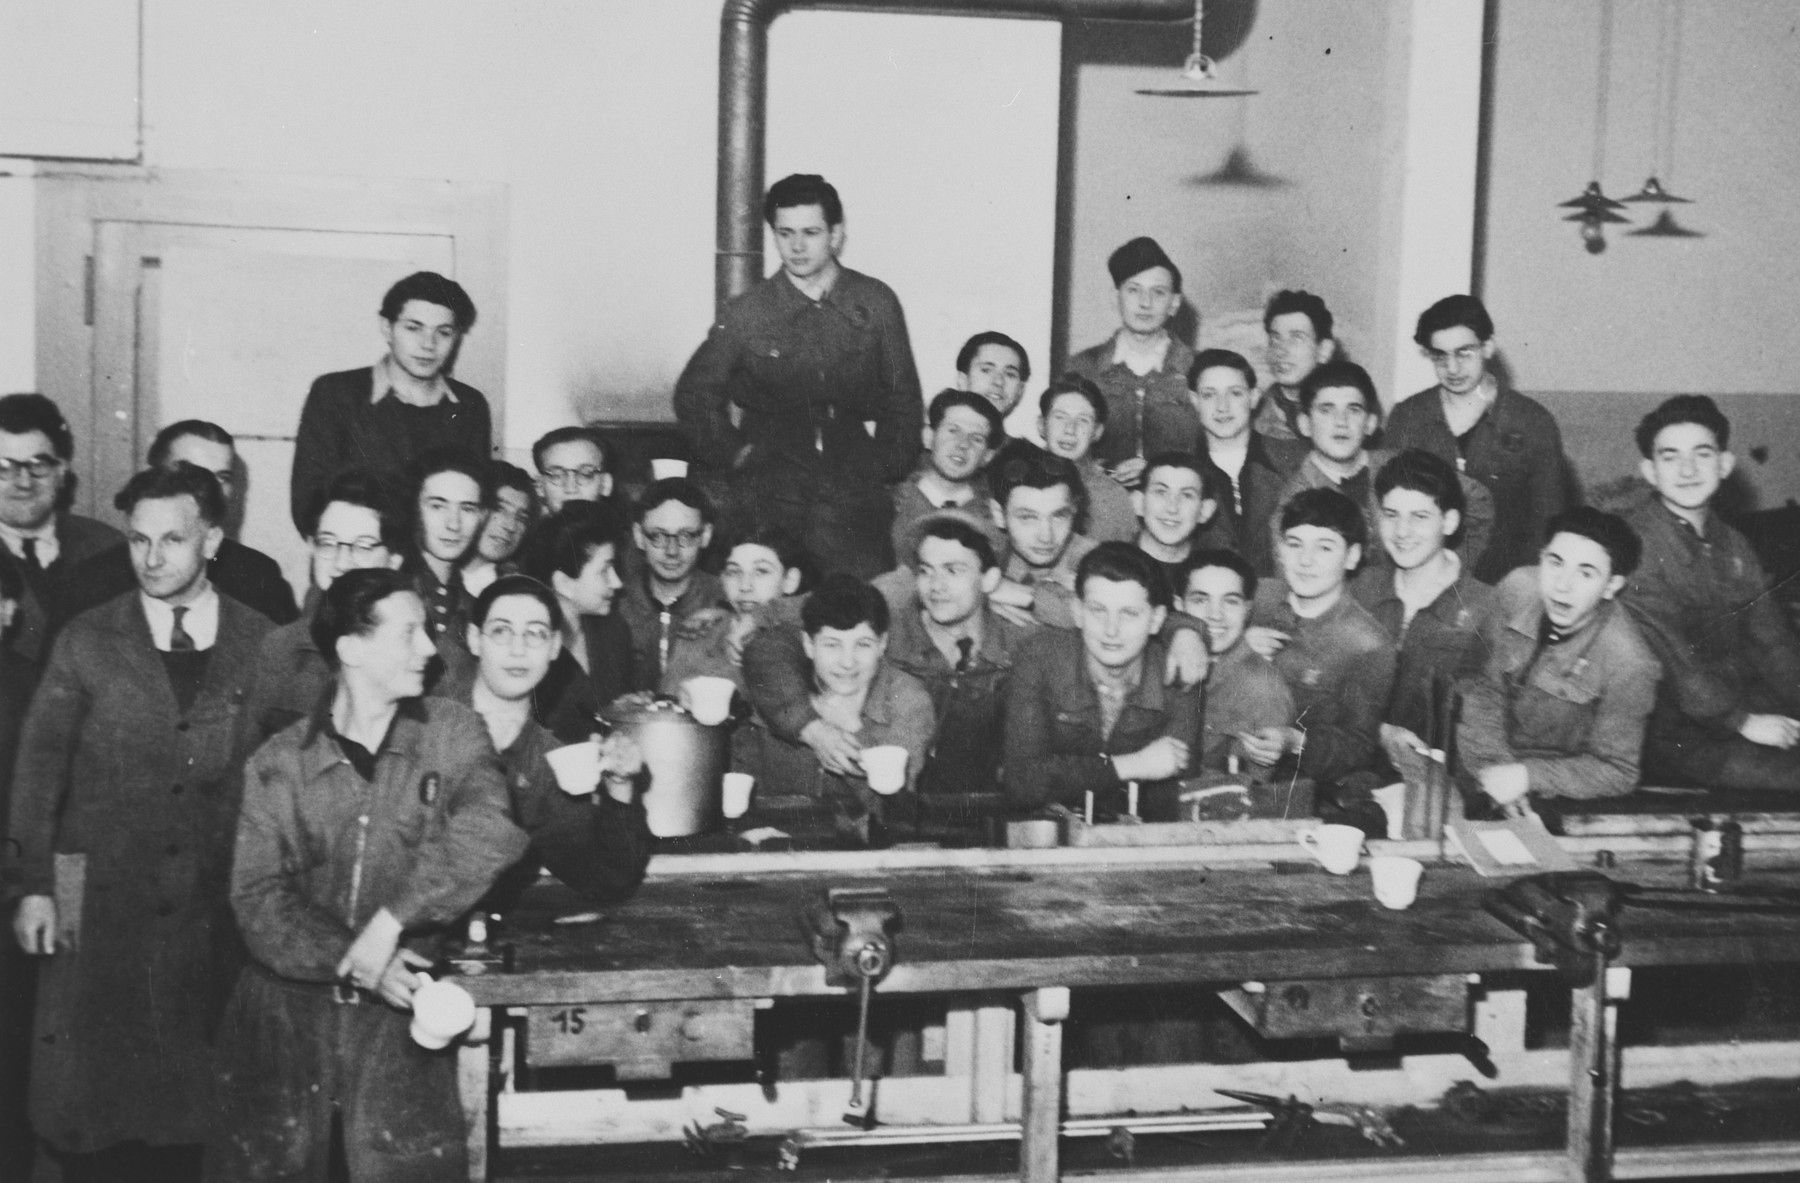 A large group of Jewish youth gather behind a piece of machinery in what probably is a vocational training school in a children's home in Switzerland.